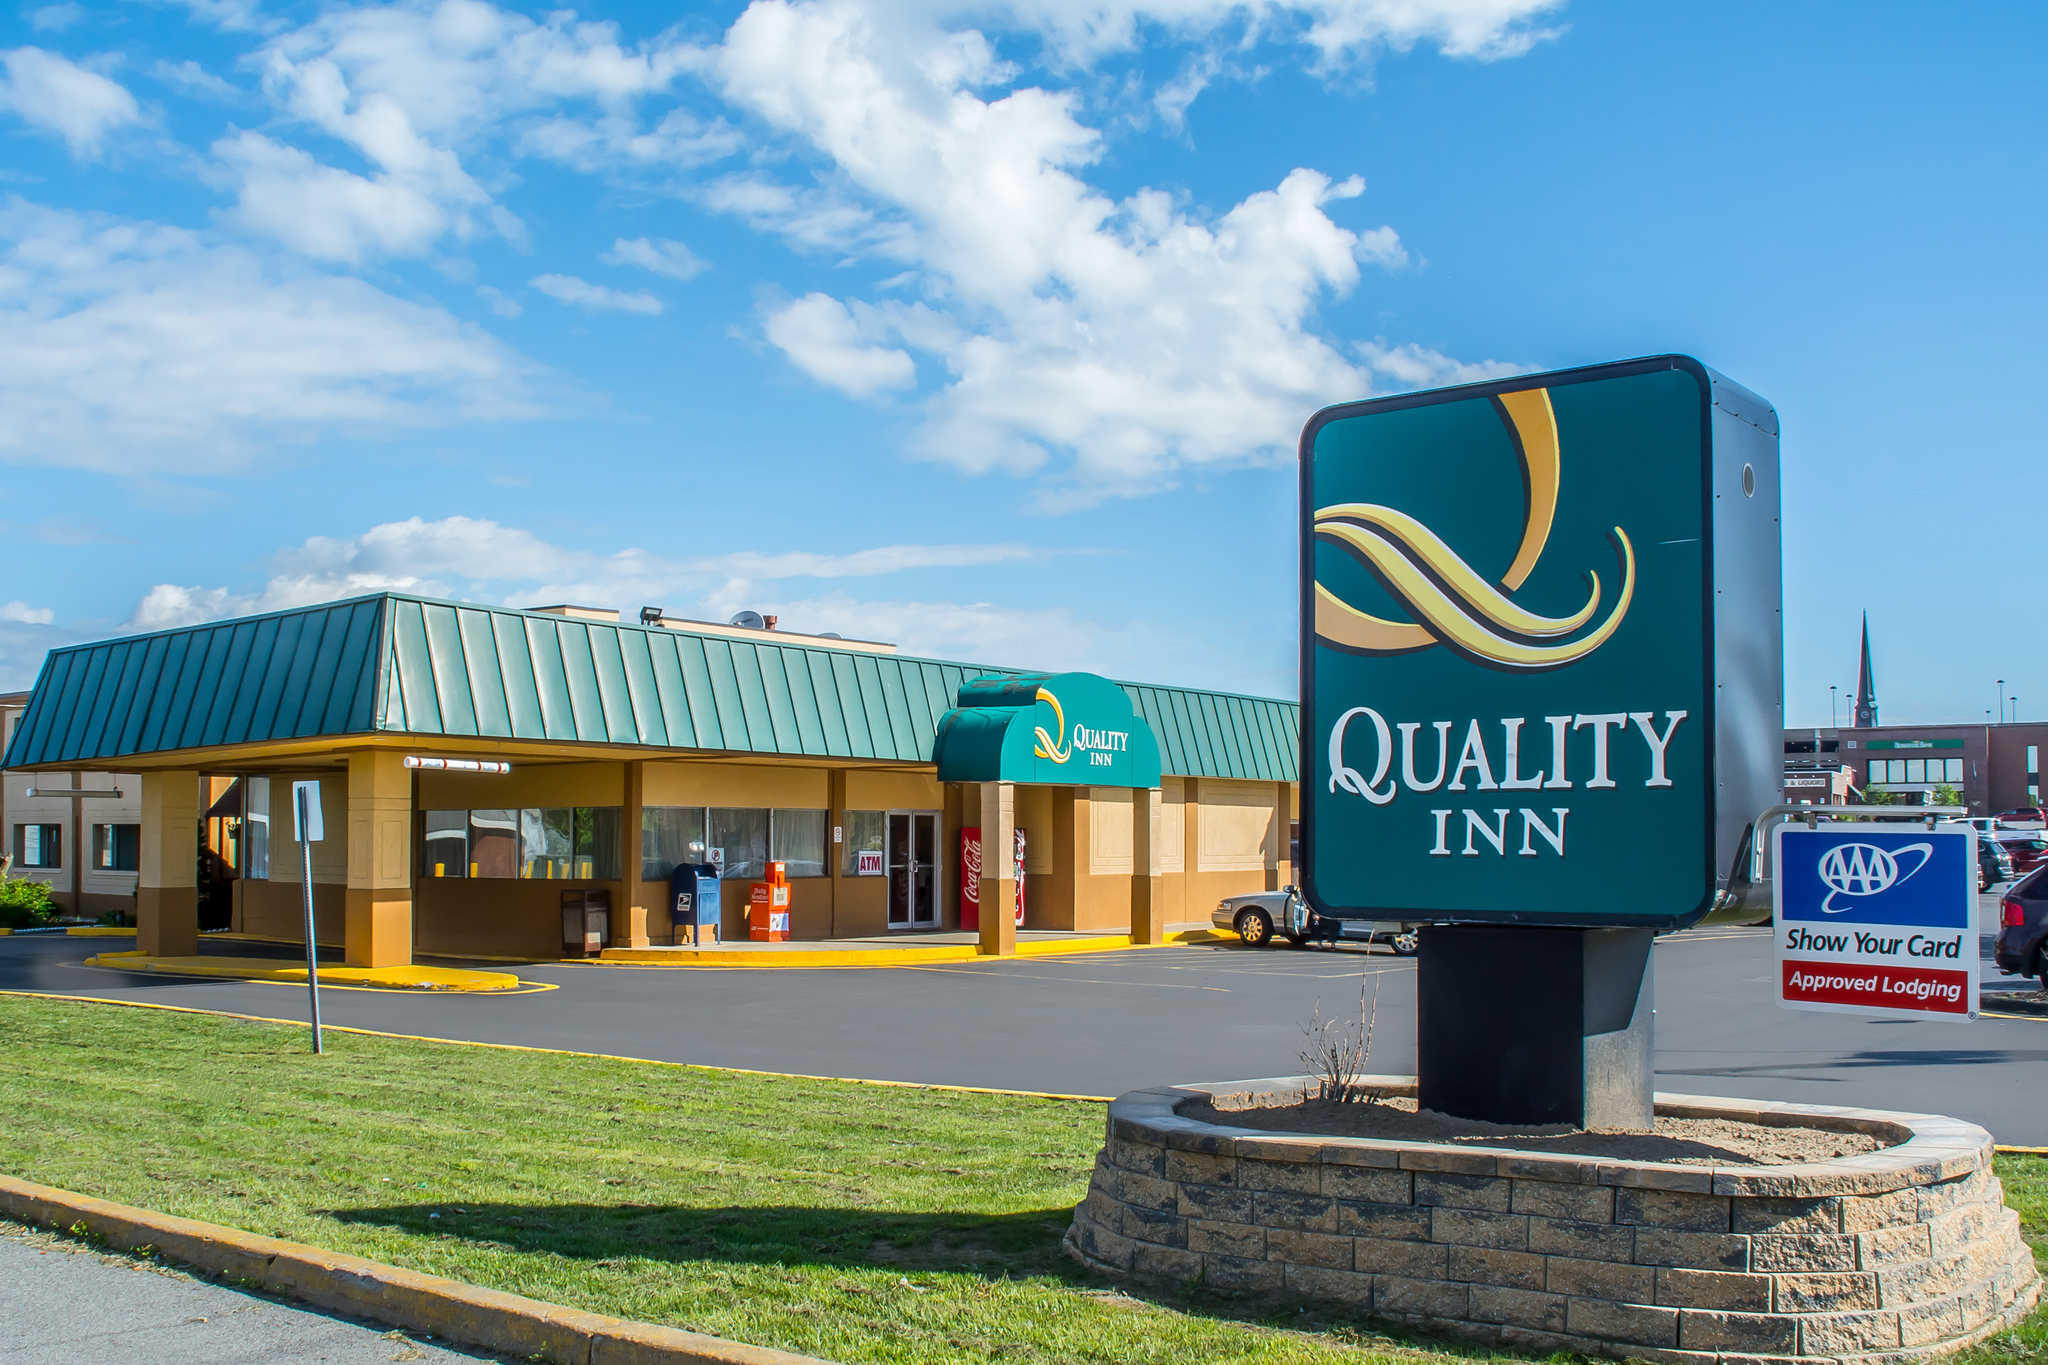 Quality Inn image 1